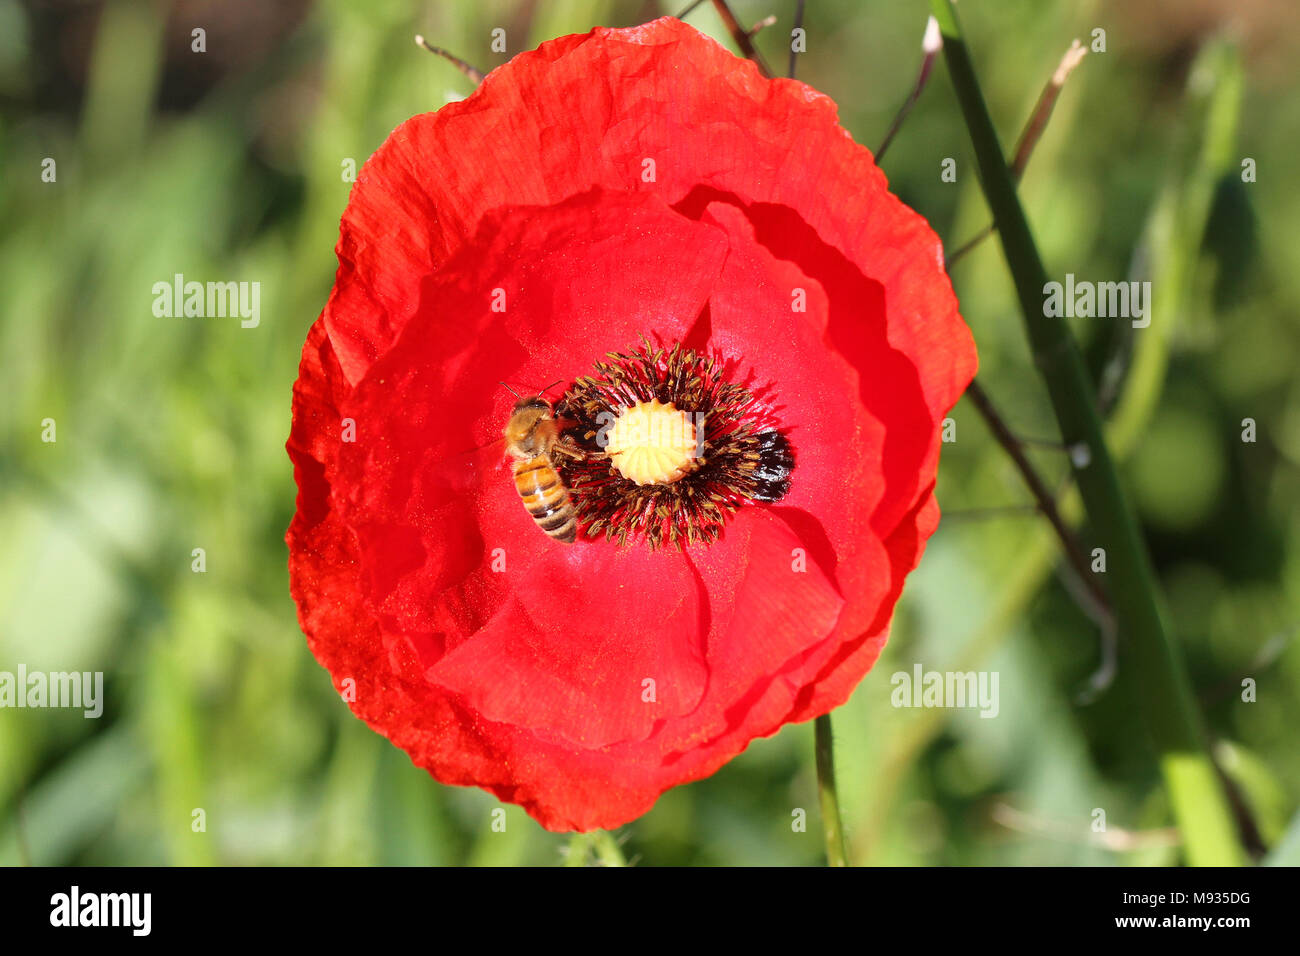 Honey bee or worker apis mellifera collecting pollen on a honey bee or worker apis mellifera collecting pollen on a remembrance poppy flower first world war remembering flanders fields poem by john mccrae mightylinksfo